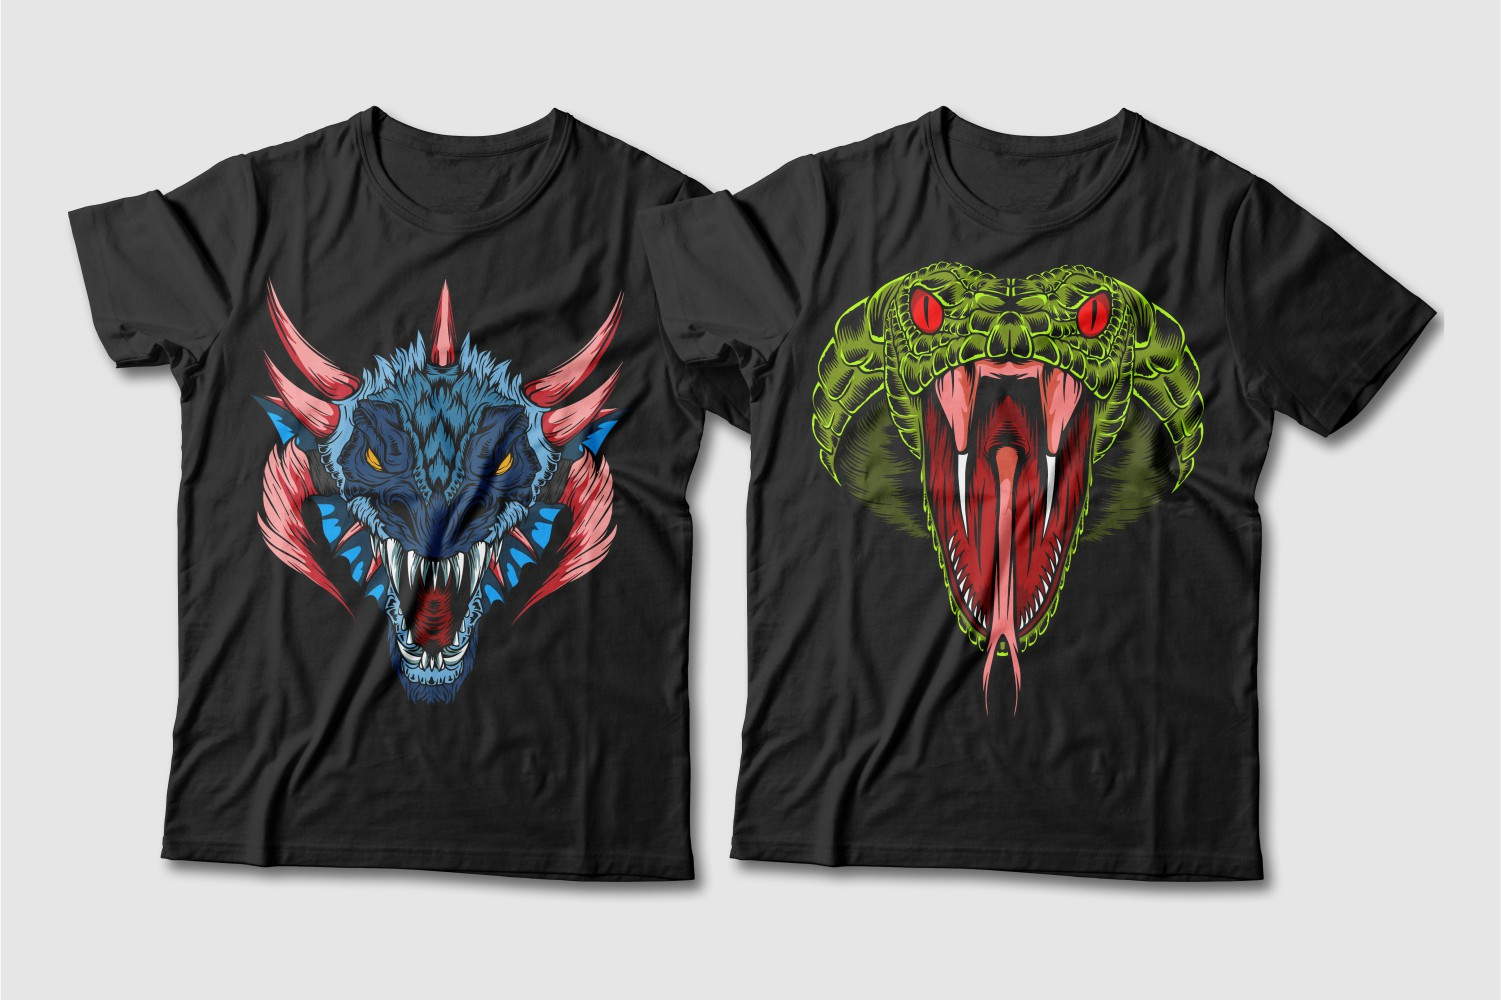 Black T-shirts with a crew neck and a blue dragon with red horns and a light green cobra with red eyes.